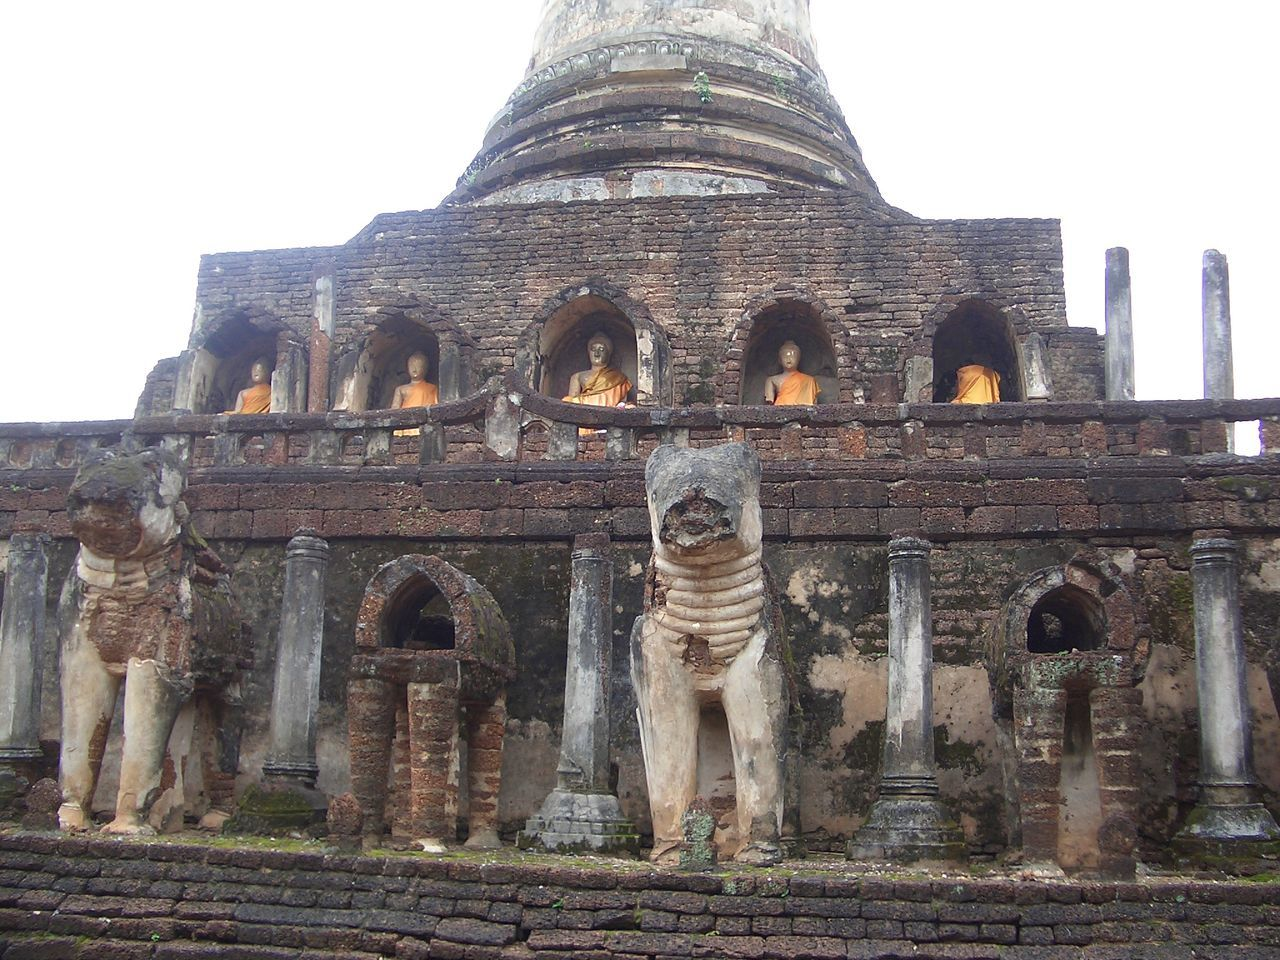 Architecture Building Exterior Built Structure Day History Low Angle View No People Outdoors Place Of Worship Religion Sculpture Sky Spirituality Statue Sukhothai Sukhothai, Thailand Sukhothaihistoricalpark Tourism Travel Destinations Wat Chang Lom BUDDHISM IS LOVE